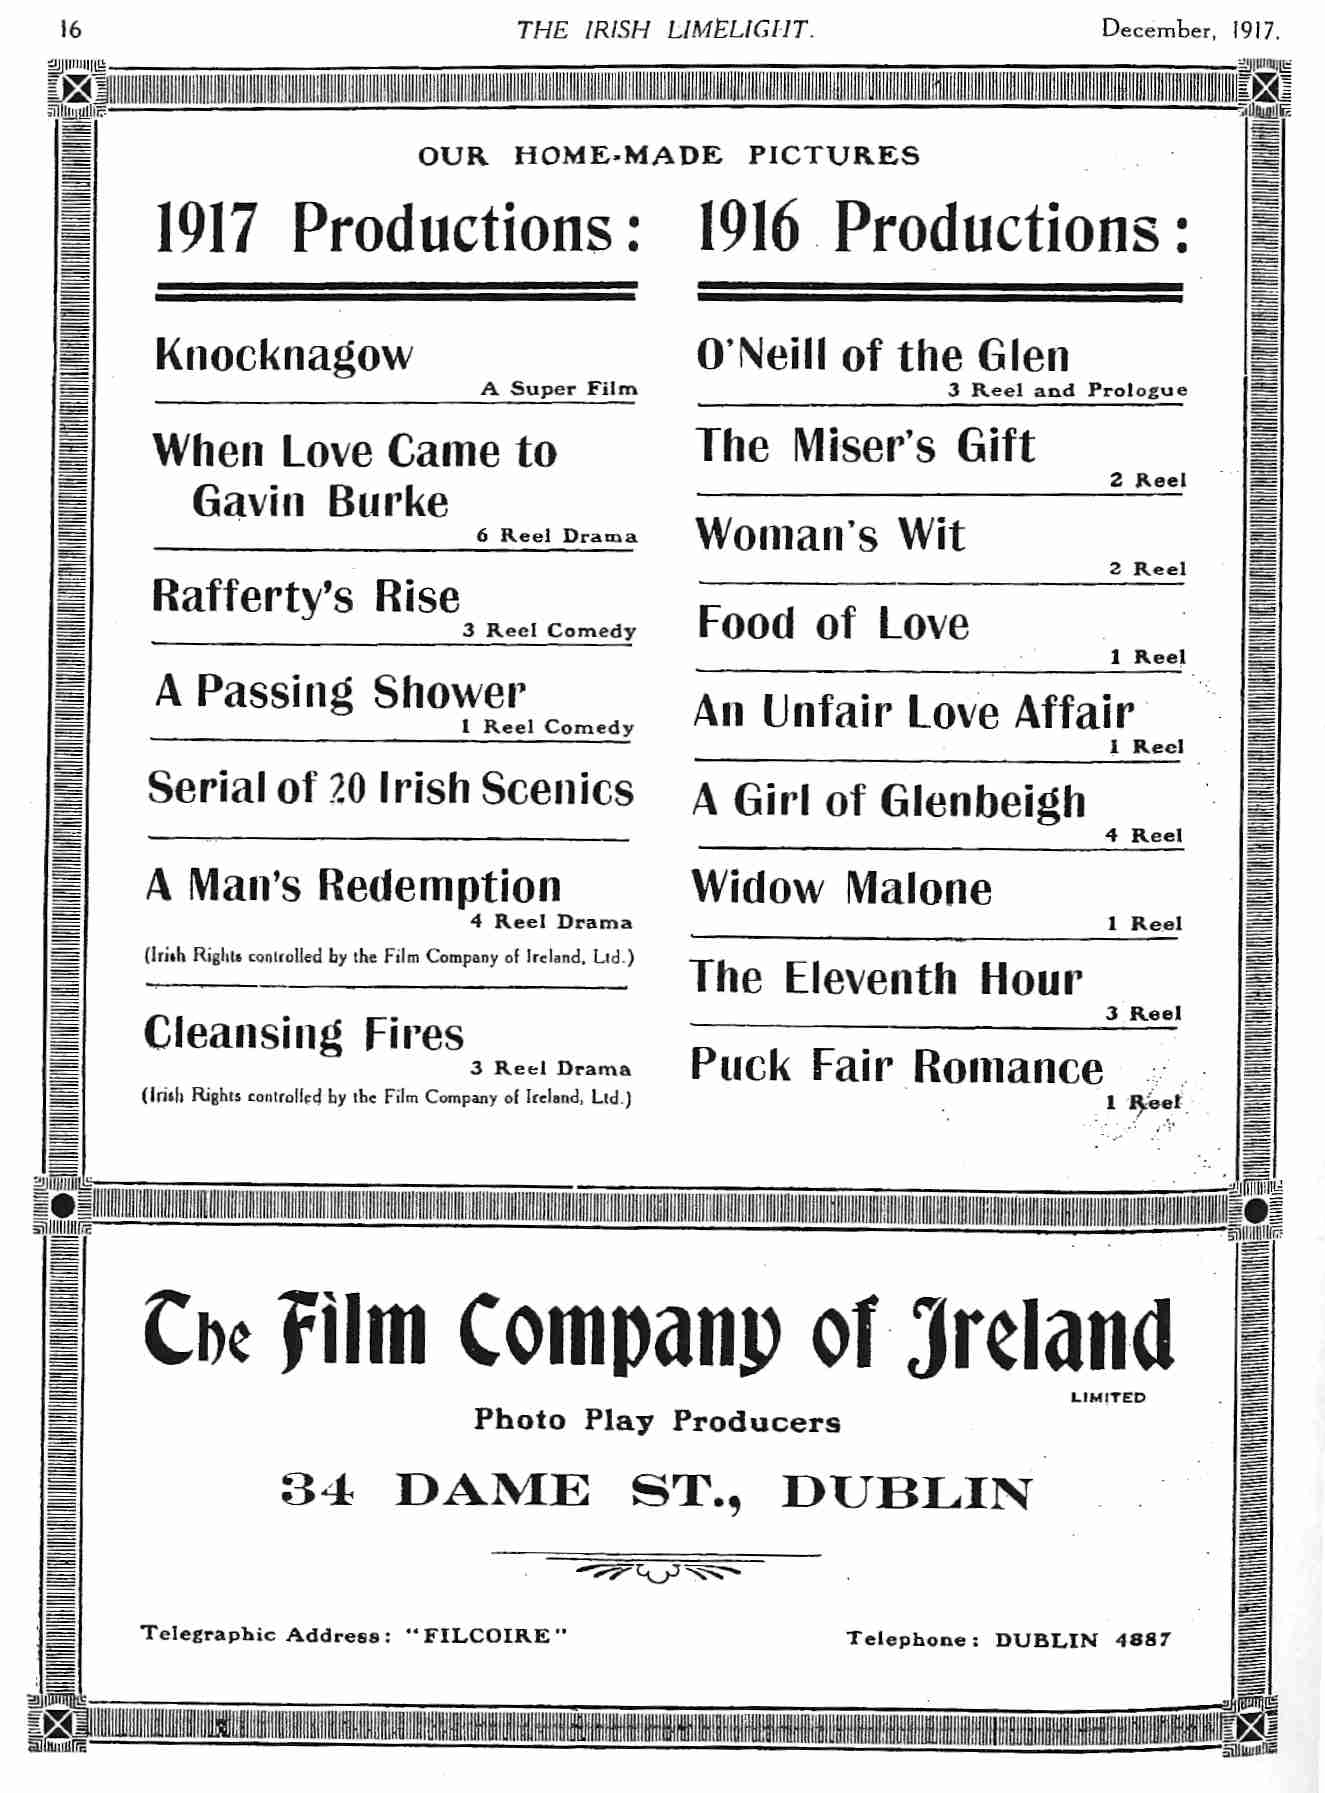 Pictures In Ireland By Paddy Bioscope Early Irish Cinema Reel Pioneer Masterpiece Mp 2000 Ad For Fcoi Films Released 1916 And Made 1917 Limelight Dec 16